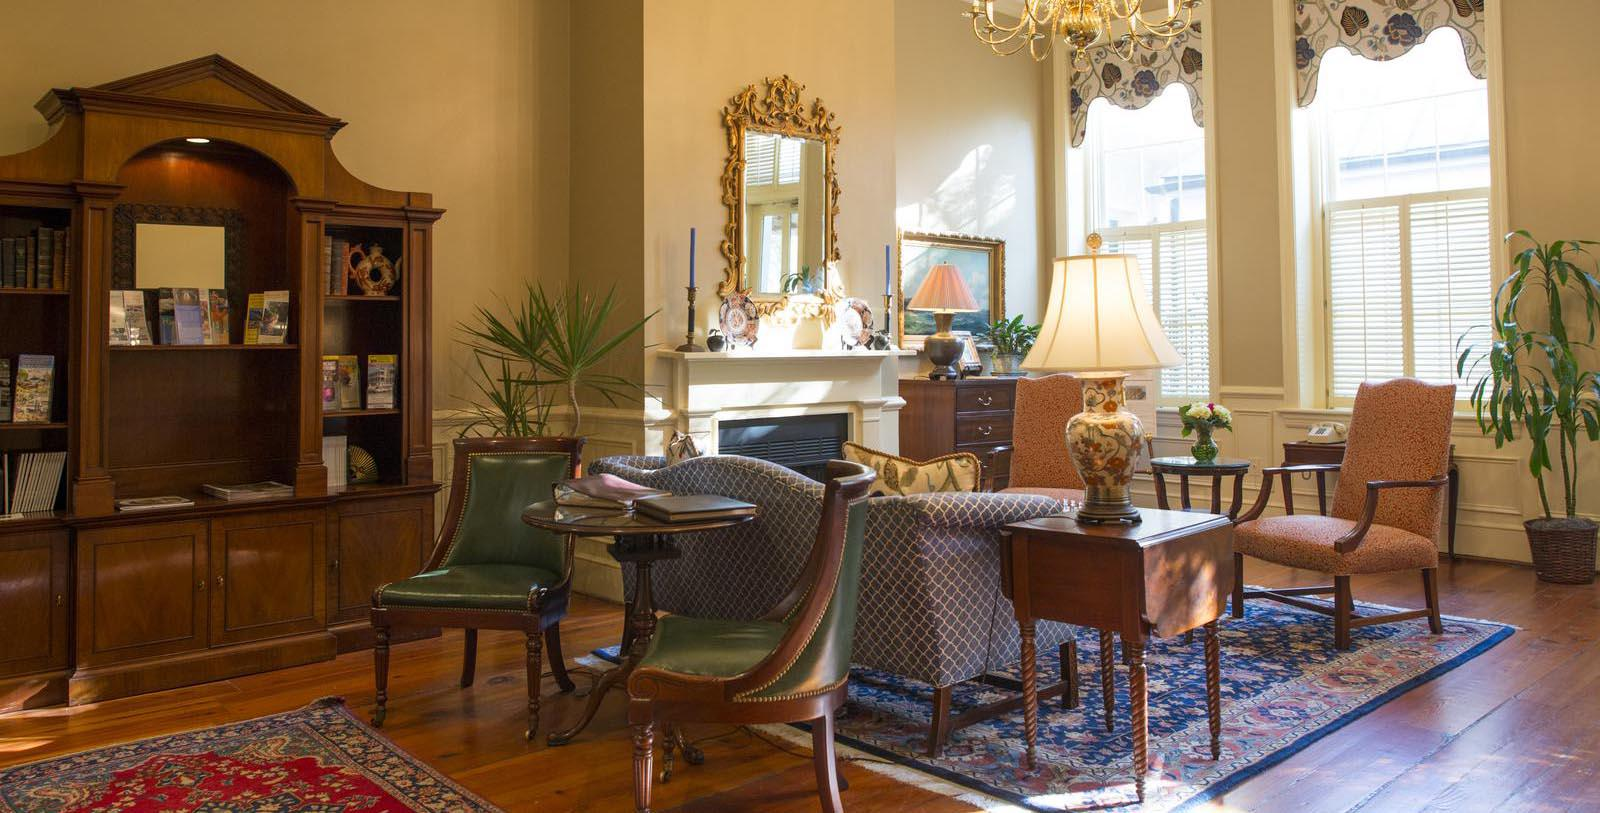 Image of Lobby Seating, Kings Courtyard Inn in Charleston, South Carolina, 1853, Member of Historic Hotels of America, Special Offers, Discounted Rates, Families, Romantic Escape, Honeymoons, Anniversaries, Reunions